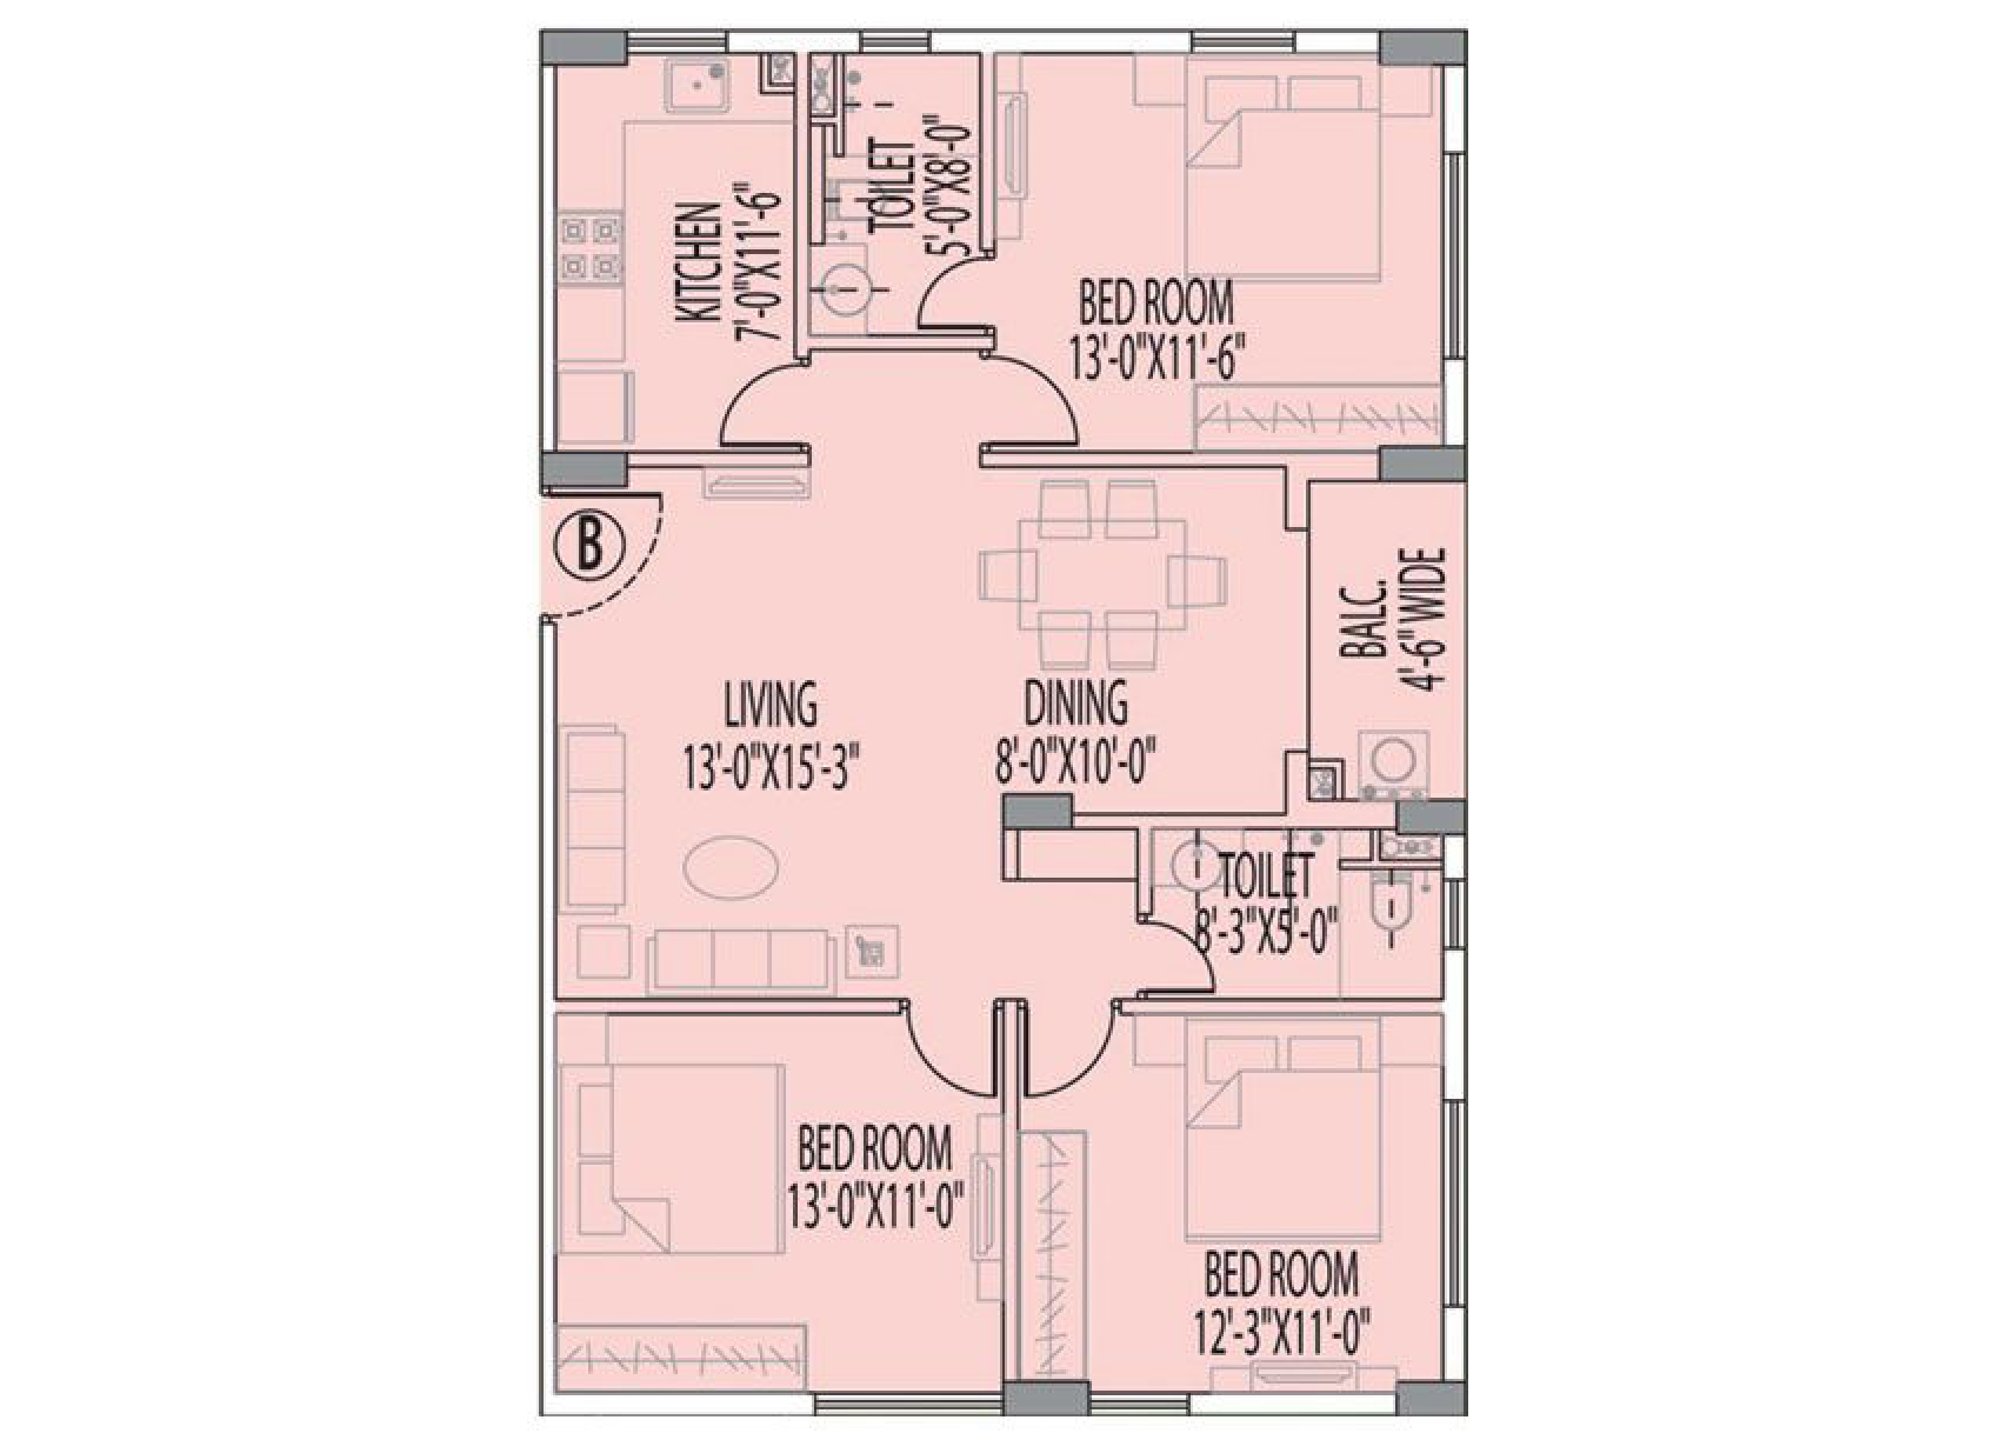 Rajat Boulevard 2 3 4 Bhk Flat In Topsia Kolkata Electrical Wiring Diagram Bedroom Plan B 1454 Sqft